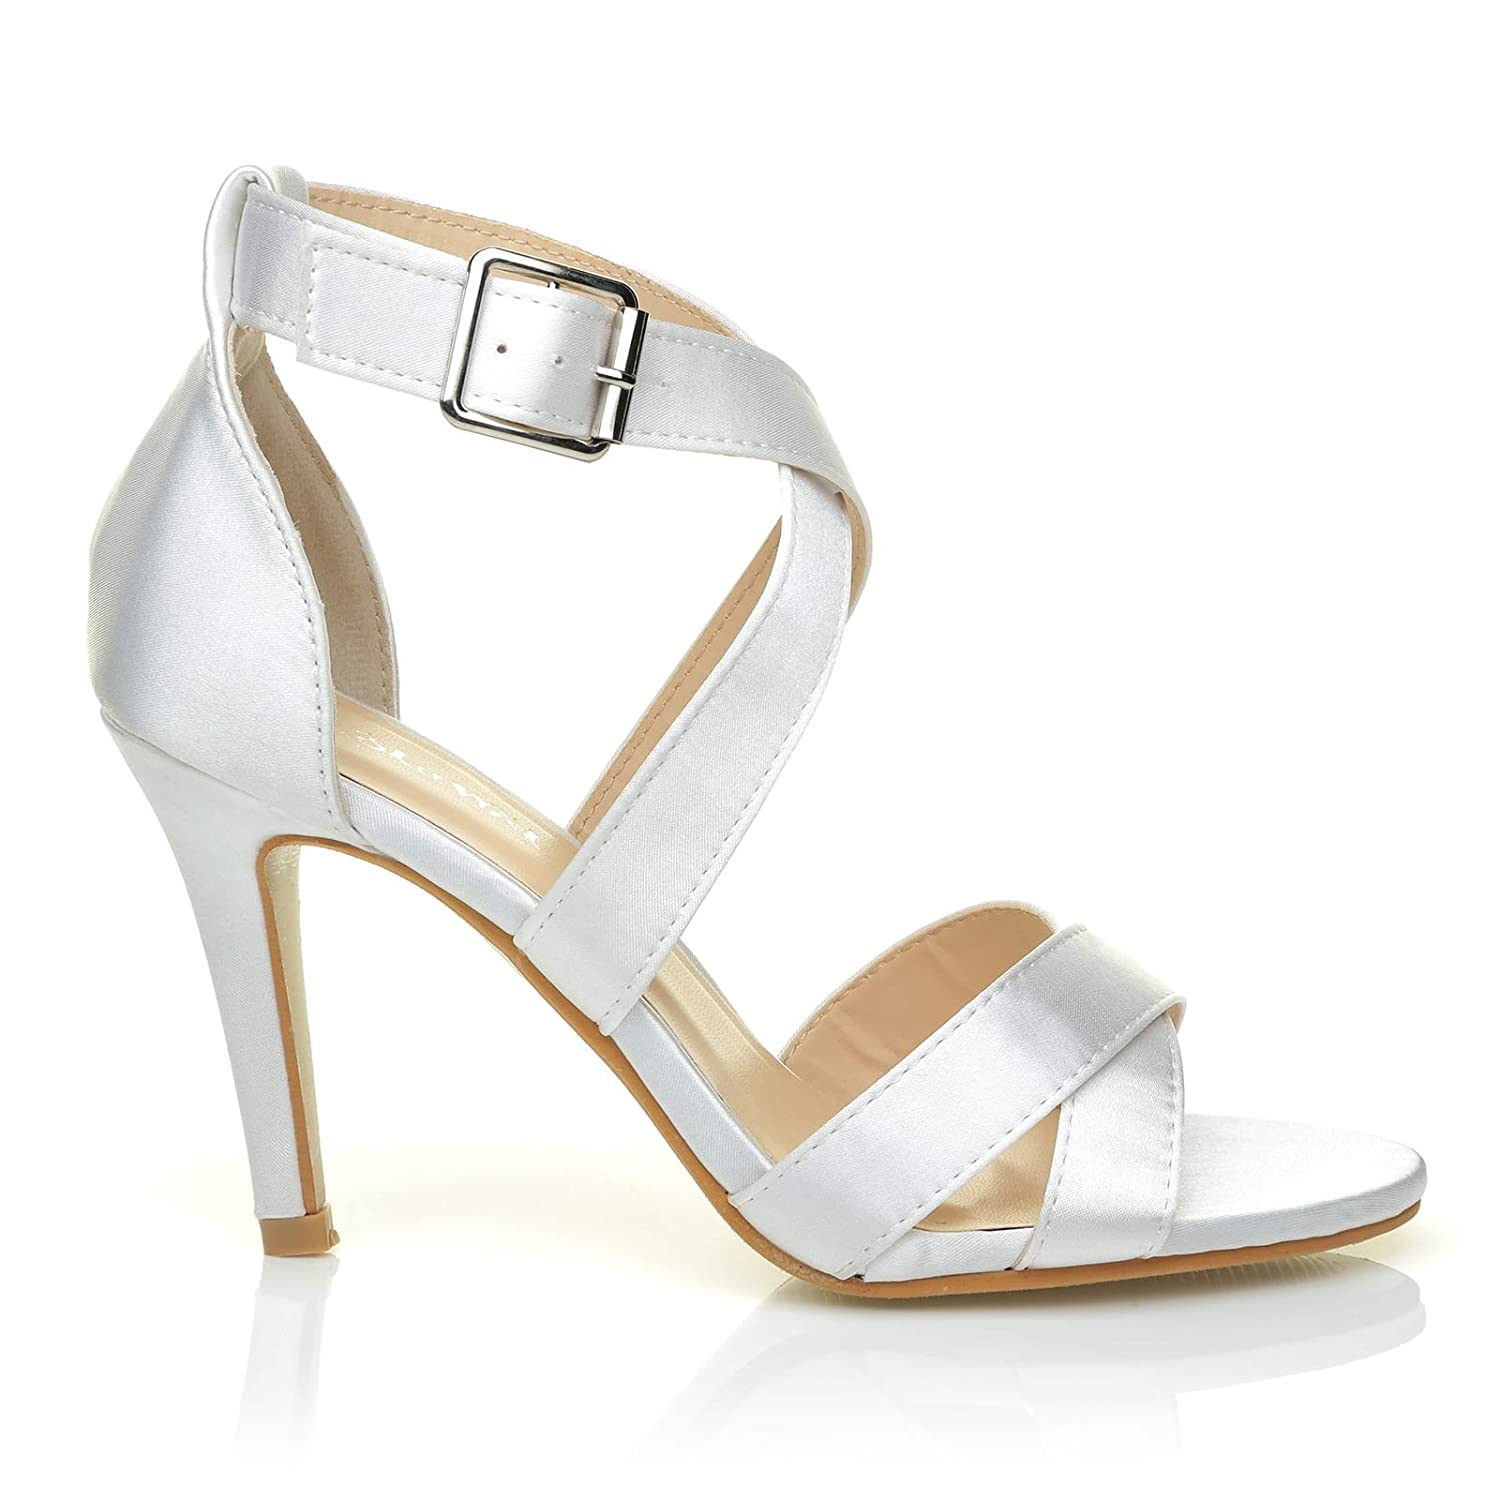 ShuWish UK Sophie, Sandales - pour femme blanc Satin Sophie, blanc Sandales - f8bfc1a - conorscully.space